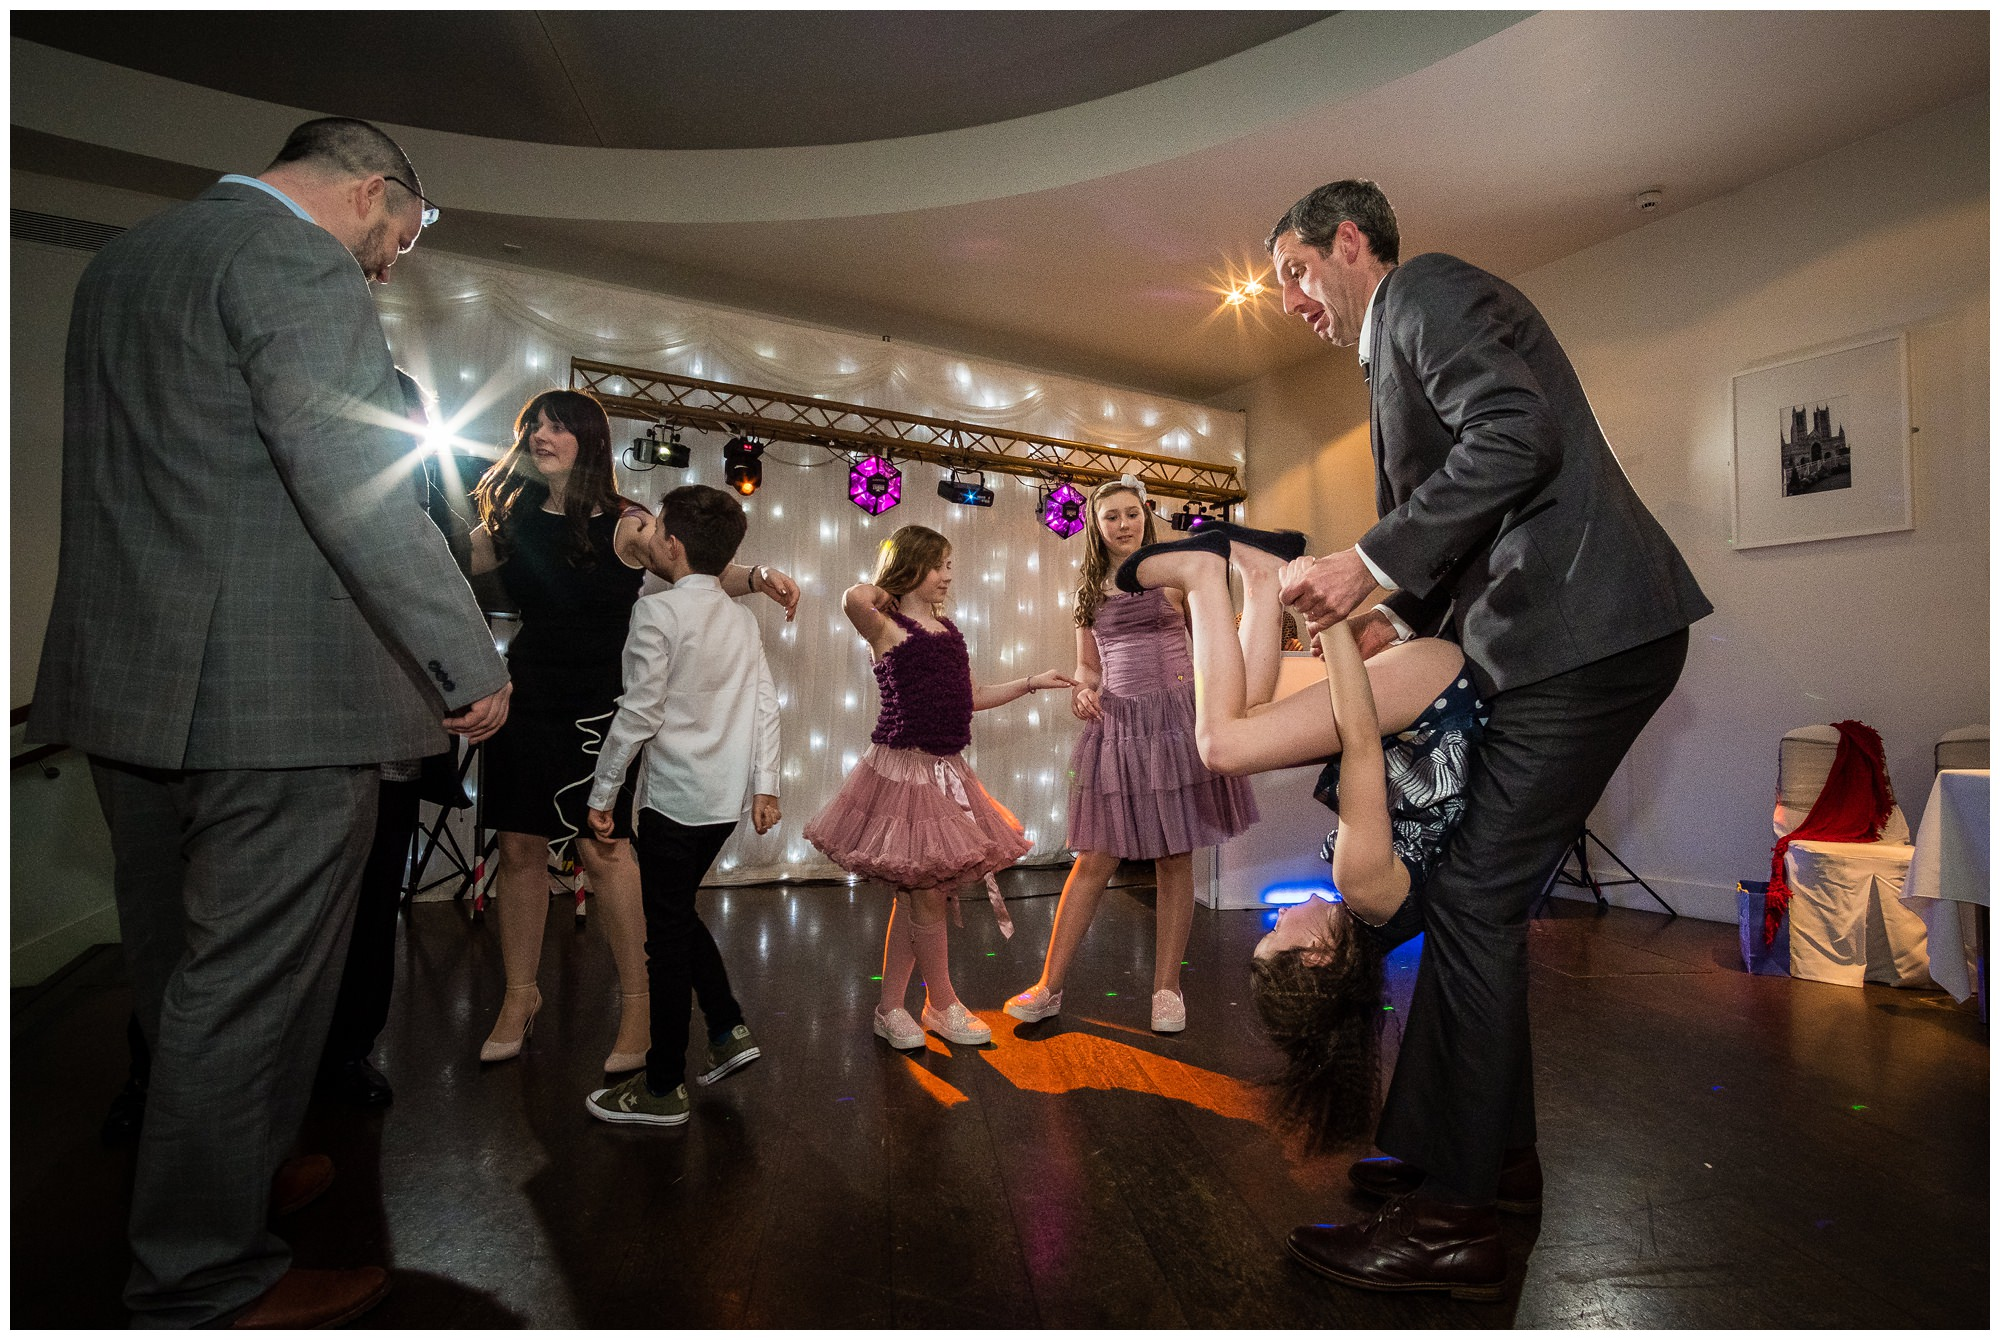 guest spinning child on dance floor